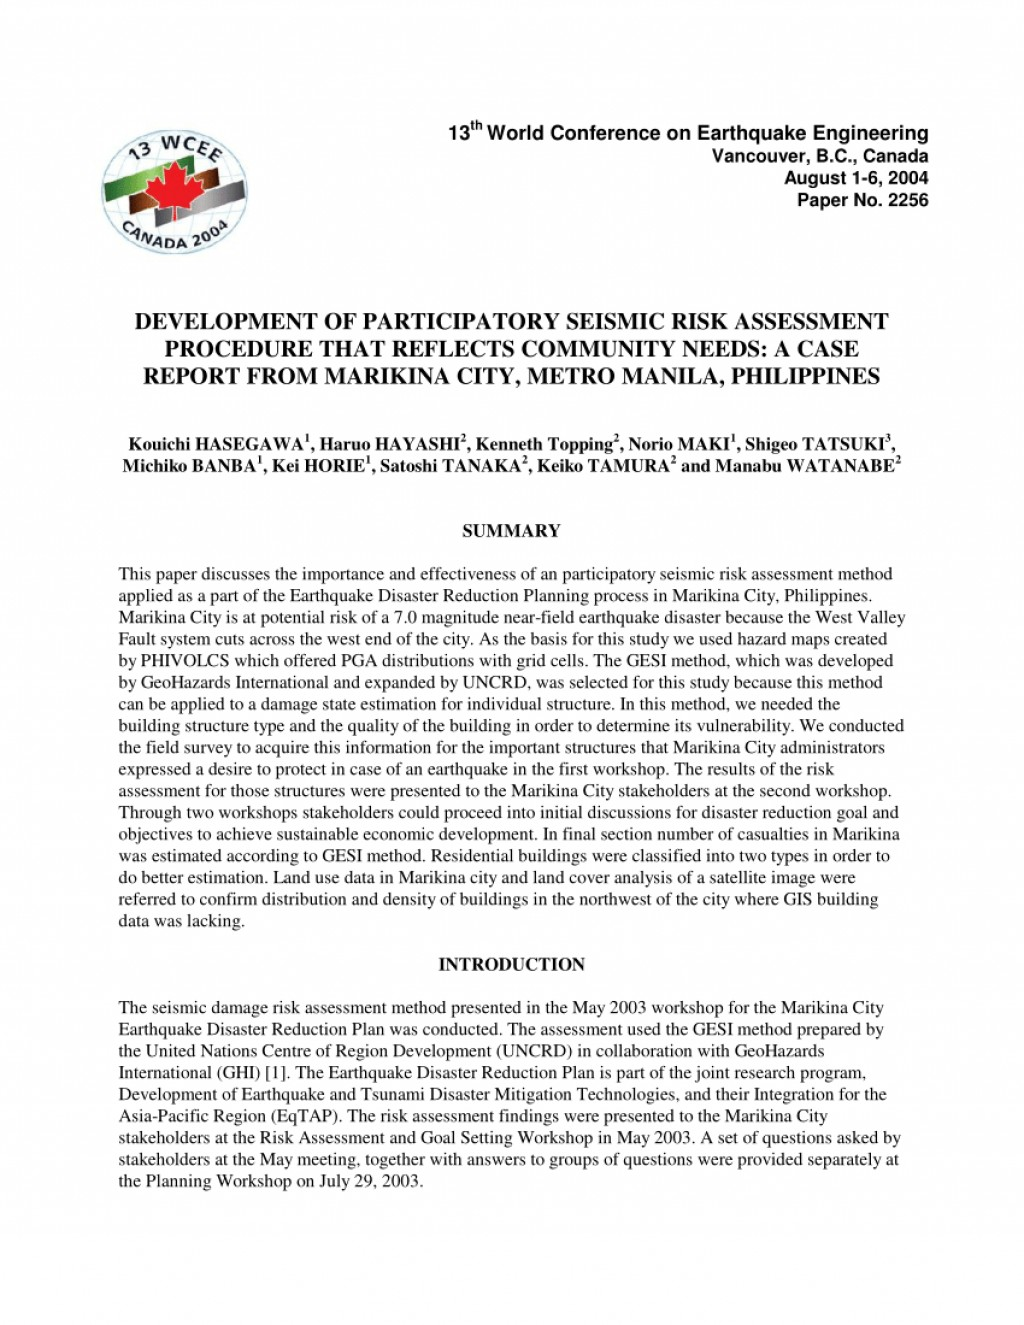 007 Research Paper Largepreview Earthquake Pdf Wondrous Philippines Large